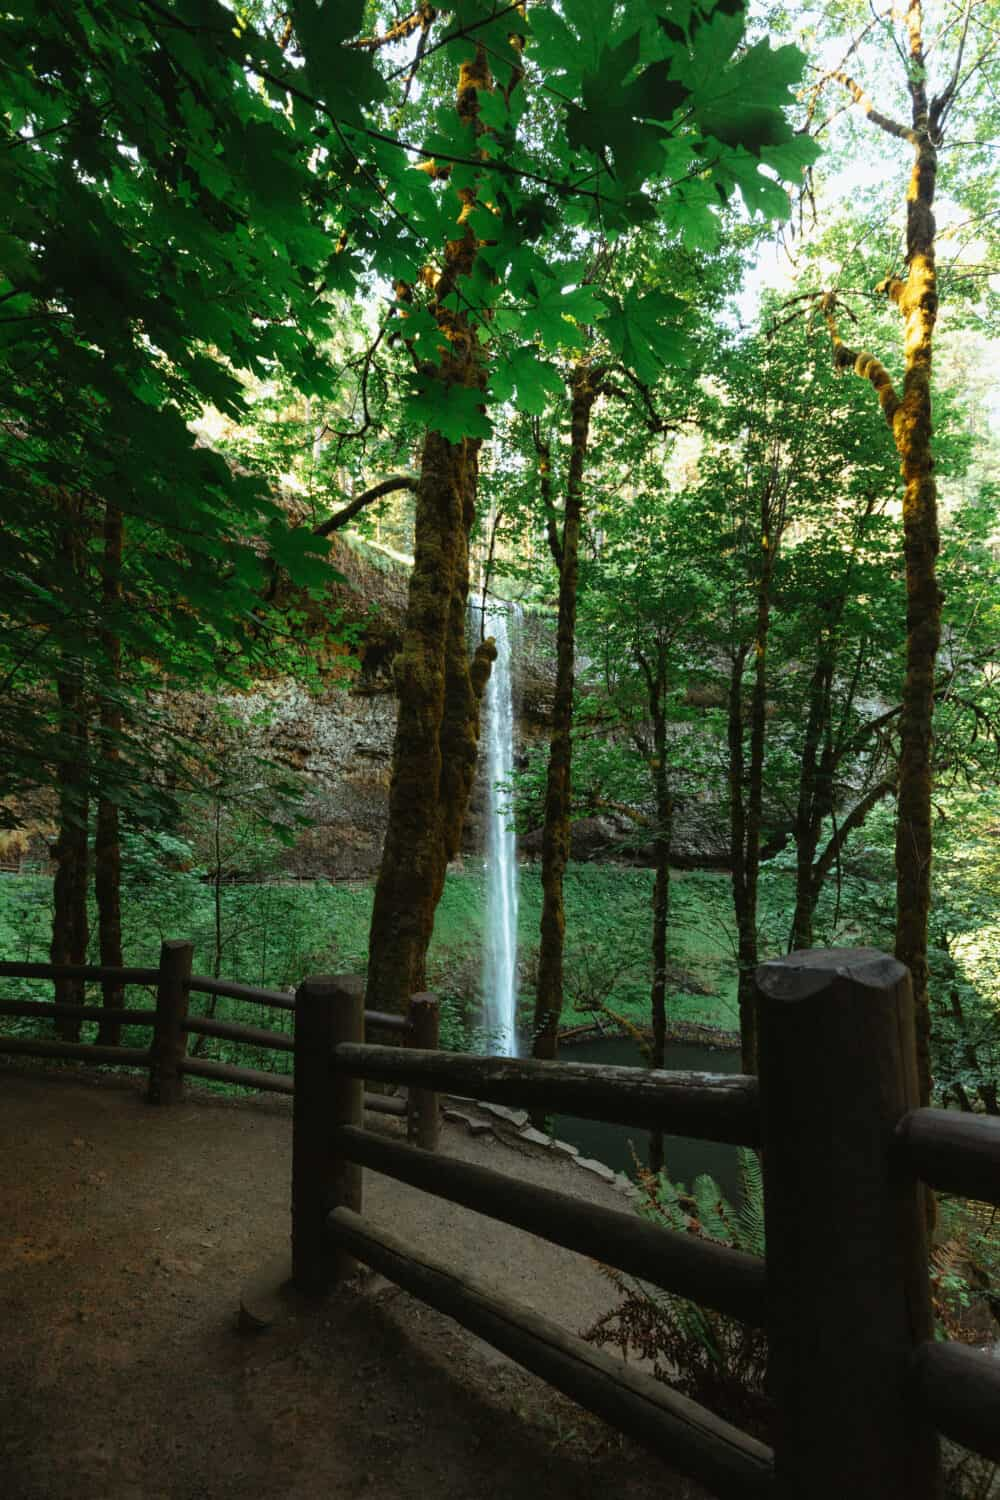 On the Trail of Ten Falls - Silver Falls State Park